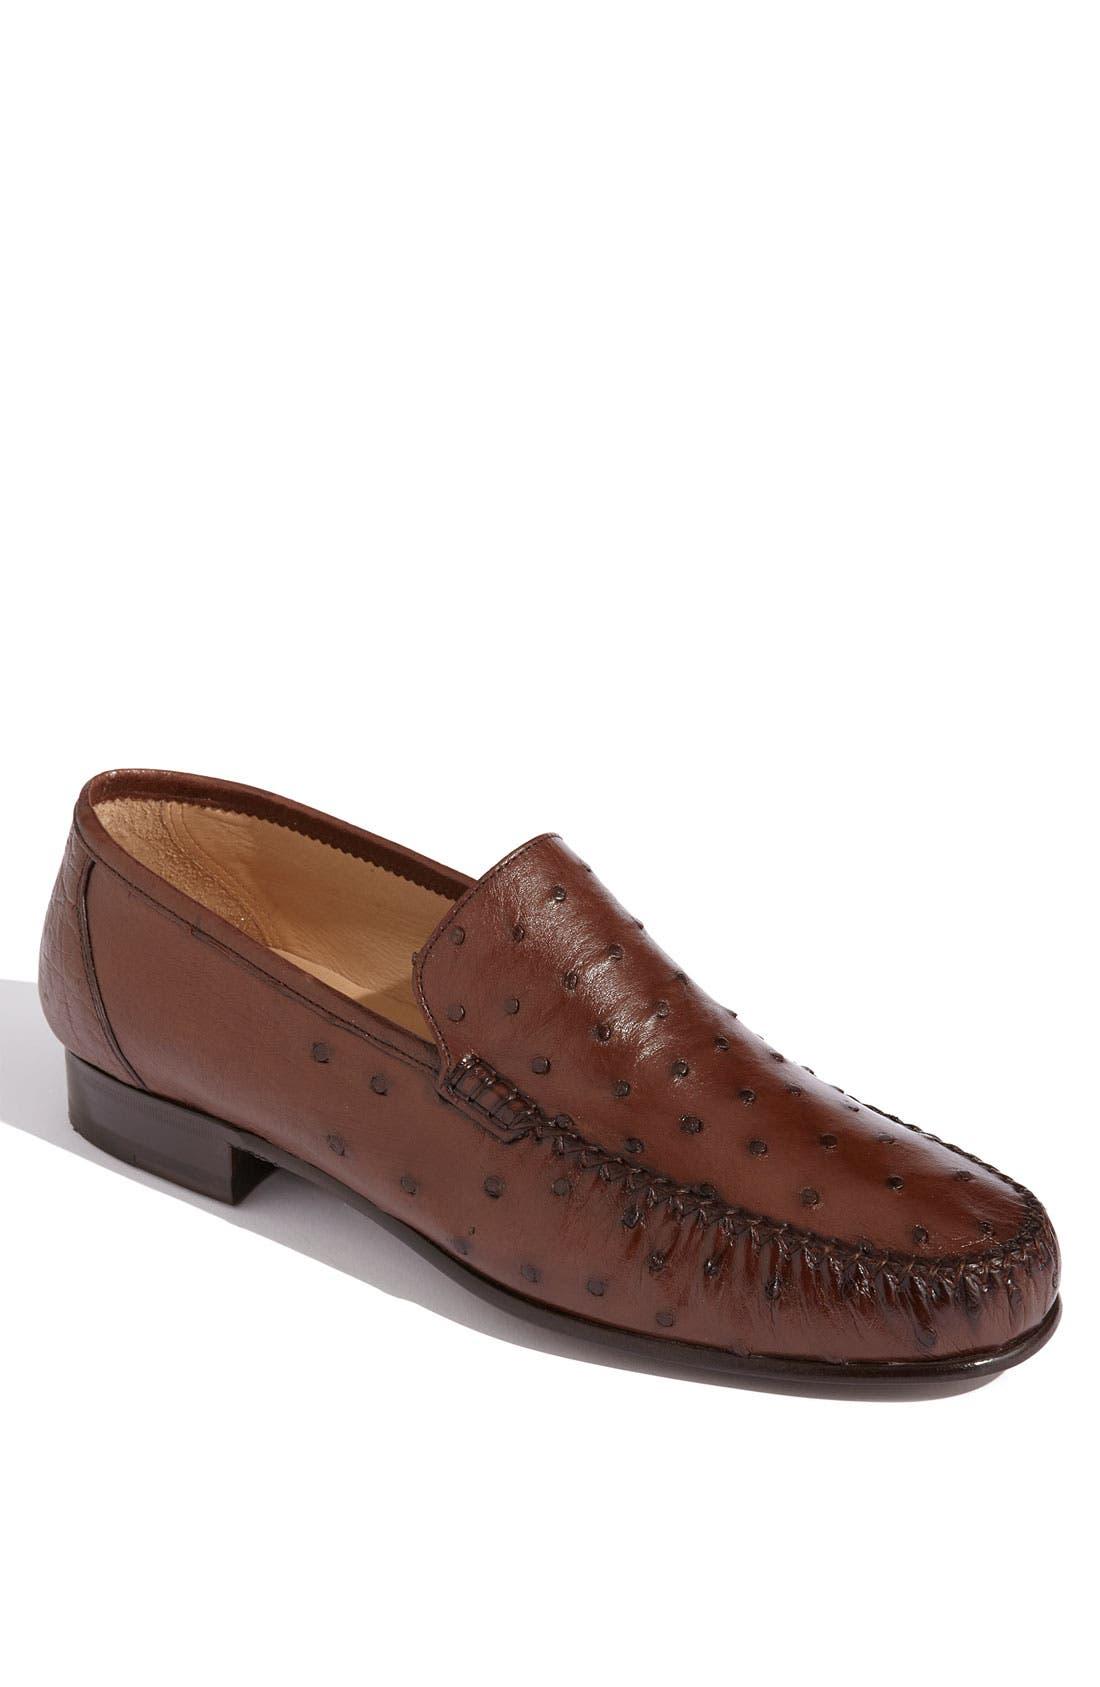 Alternate Image 1 Selected - Magnanni 'Solea' Ostrich Loafer